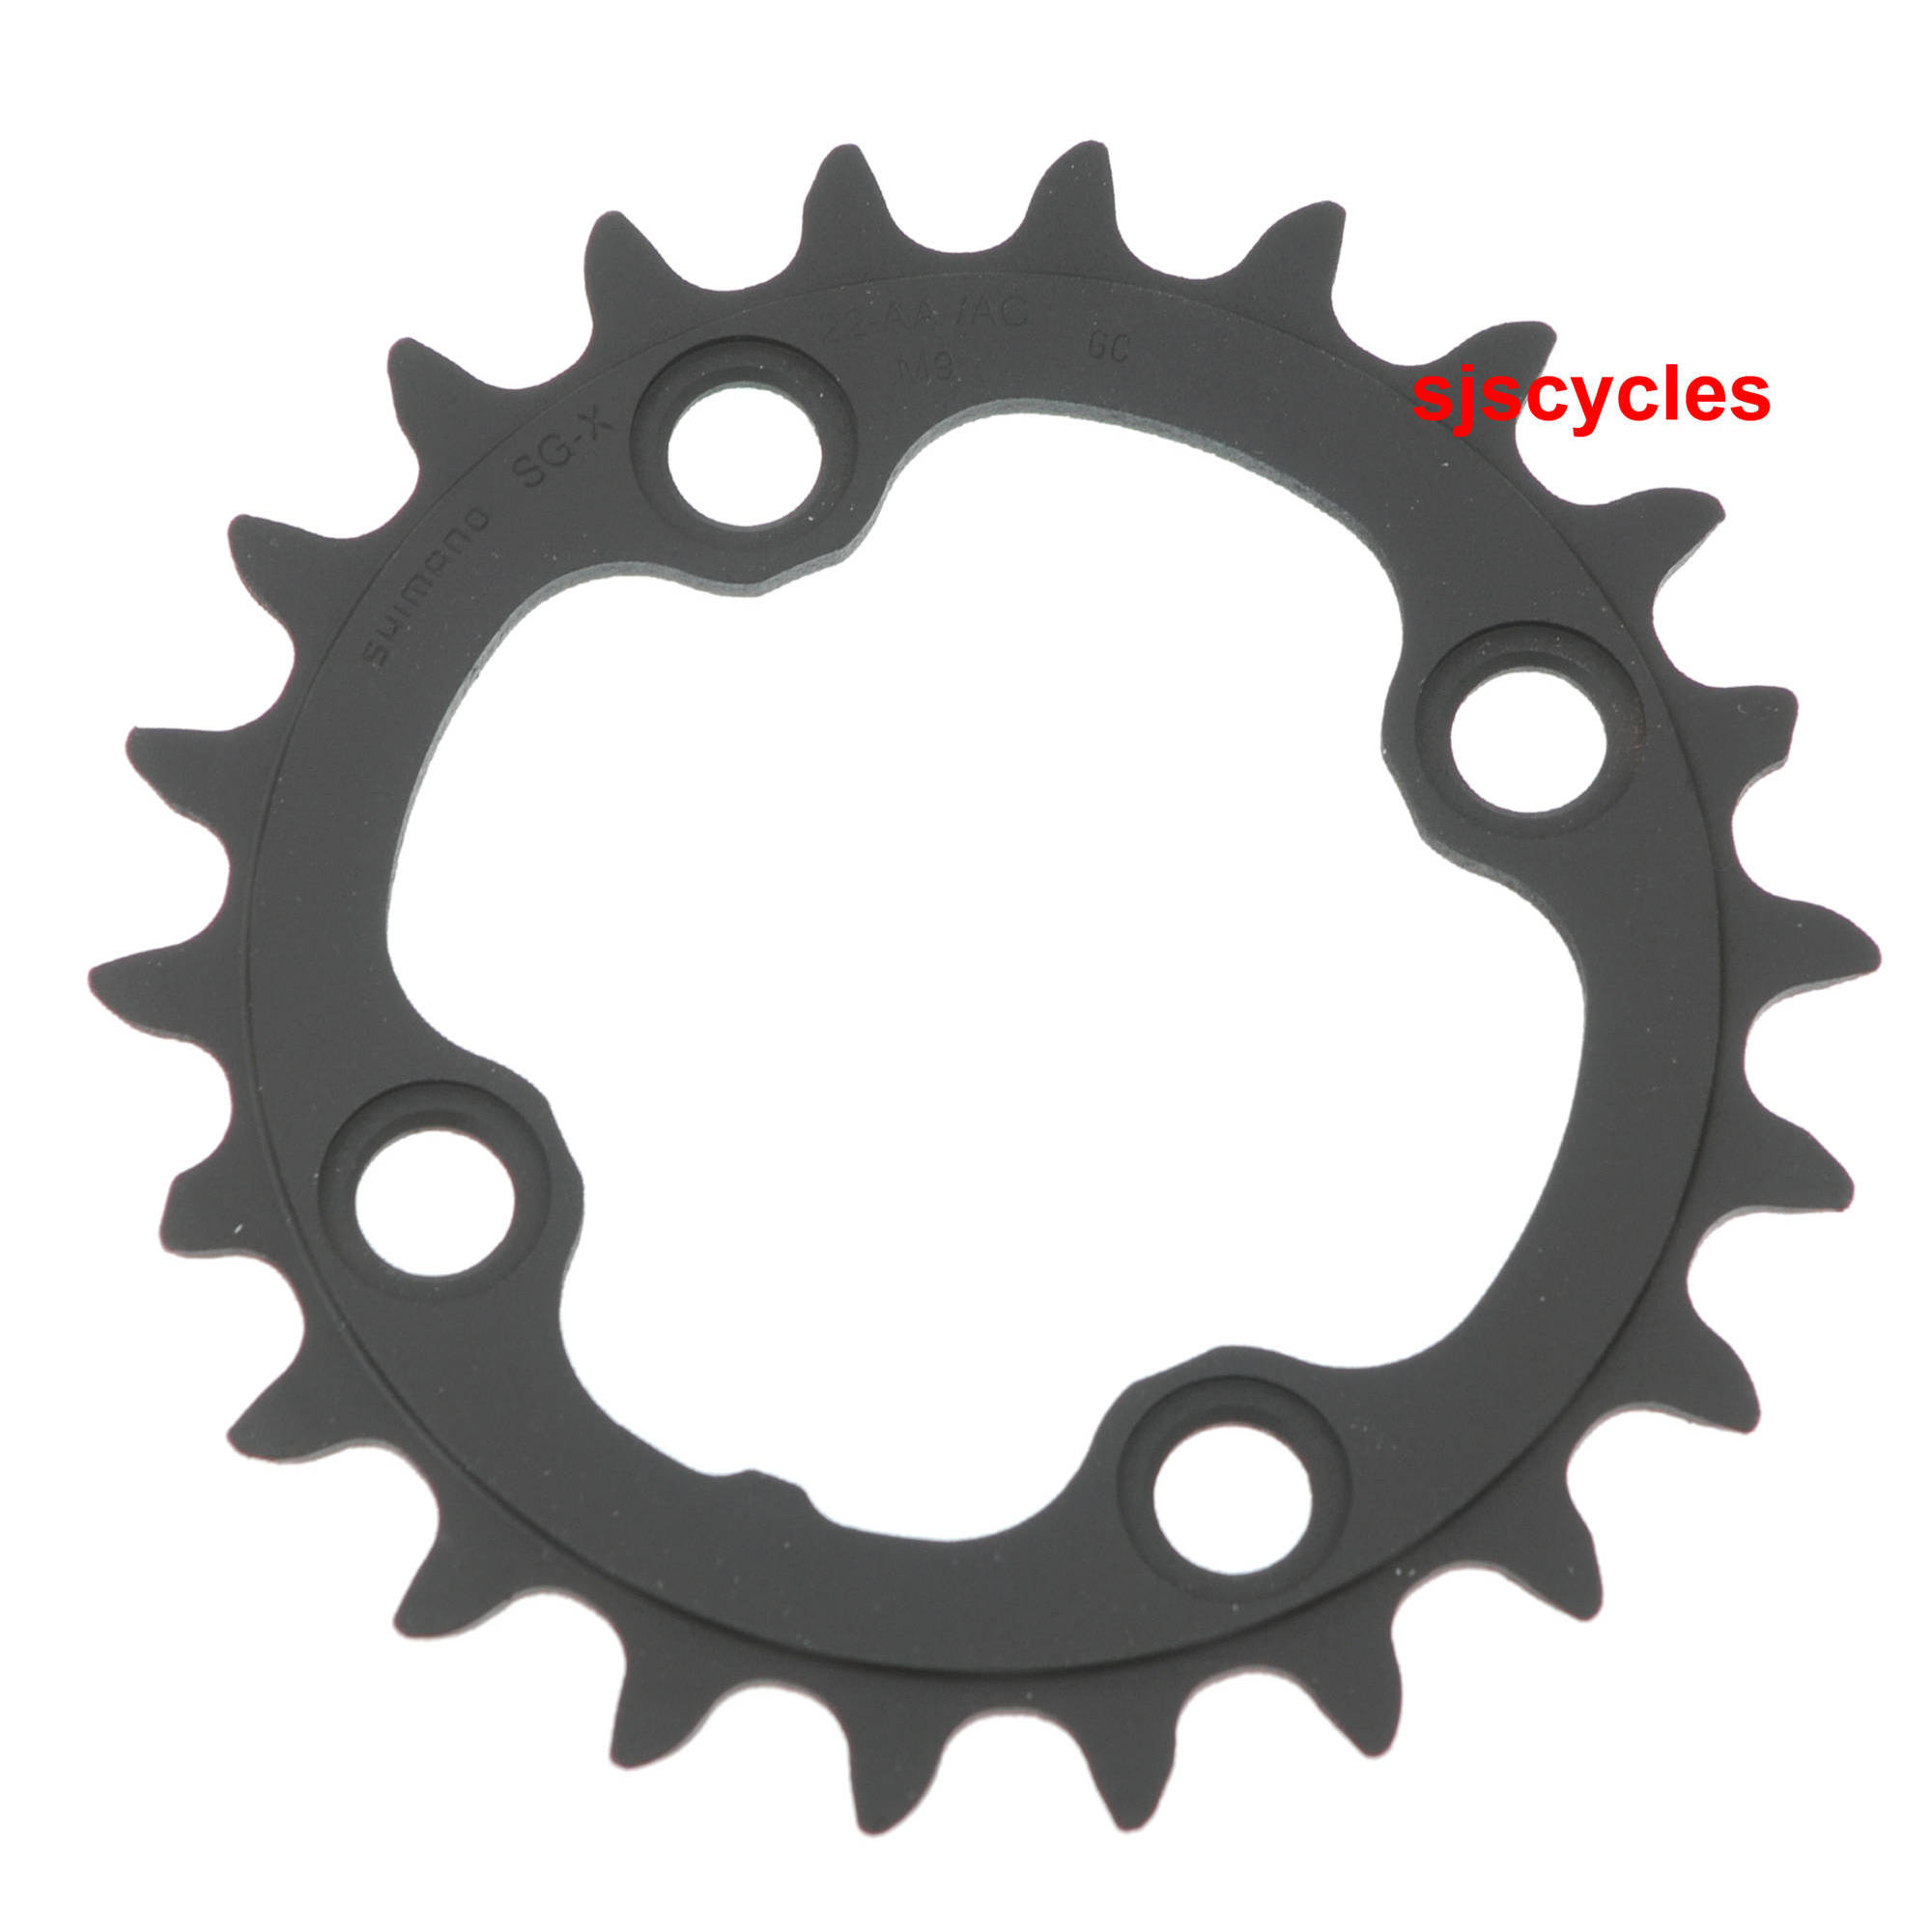 SHIMANO XT M770 22T X 64MM 9-SPEED BLACK BICYCLE CHAINRING